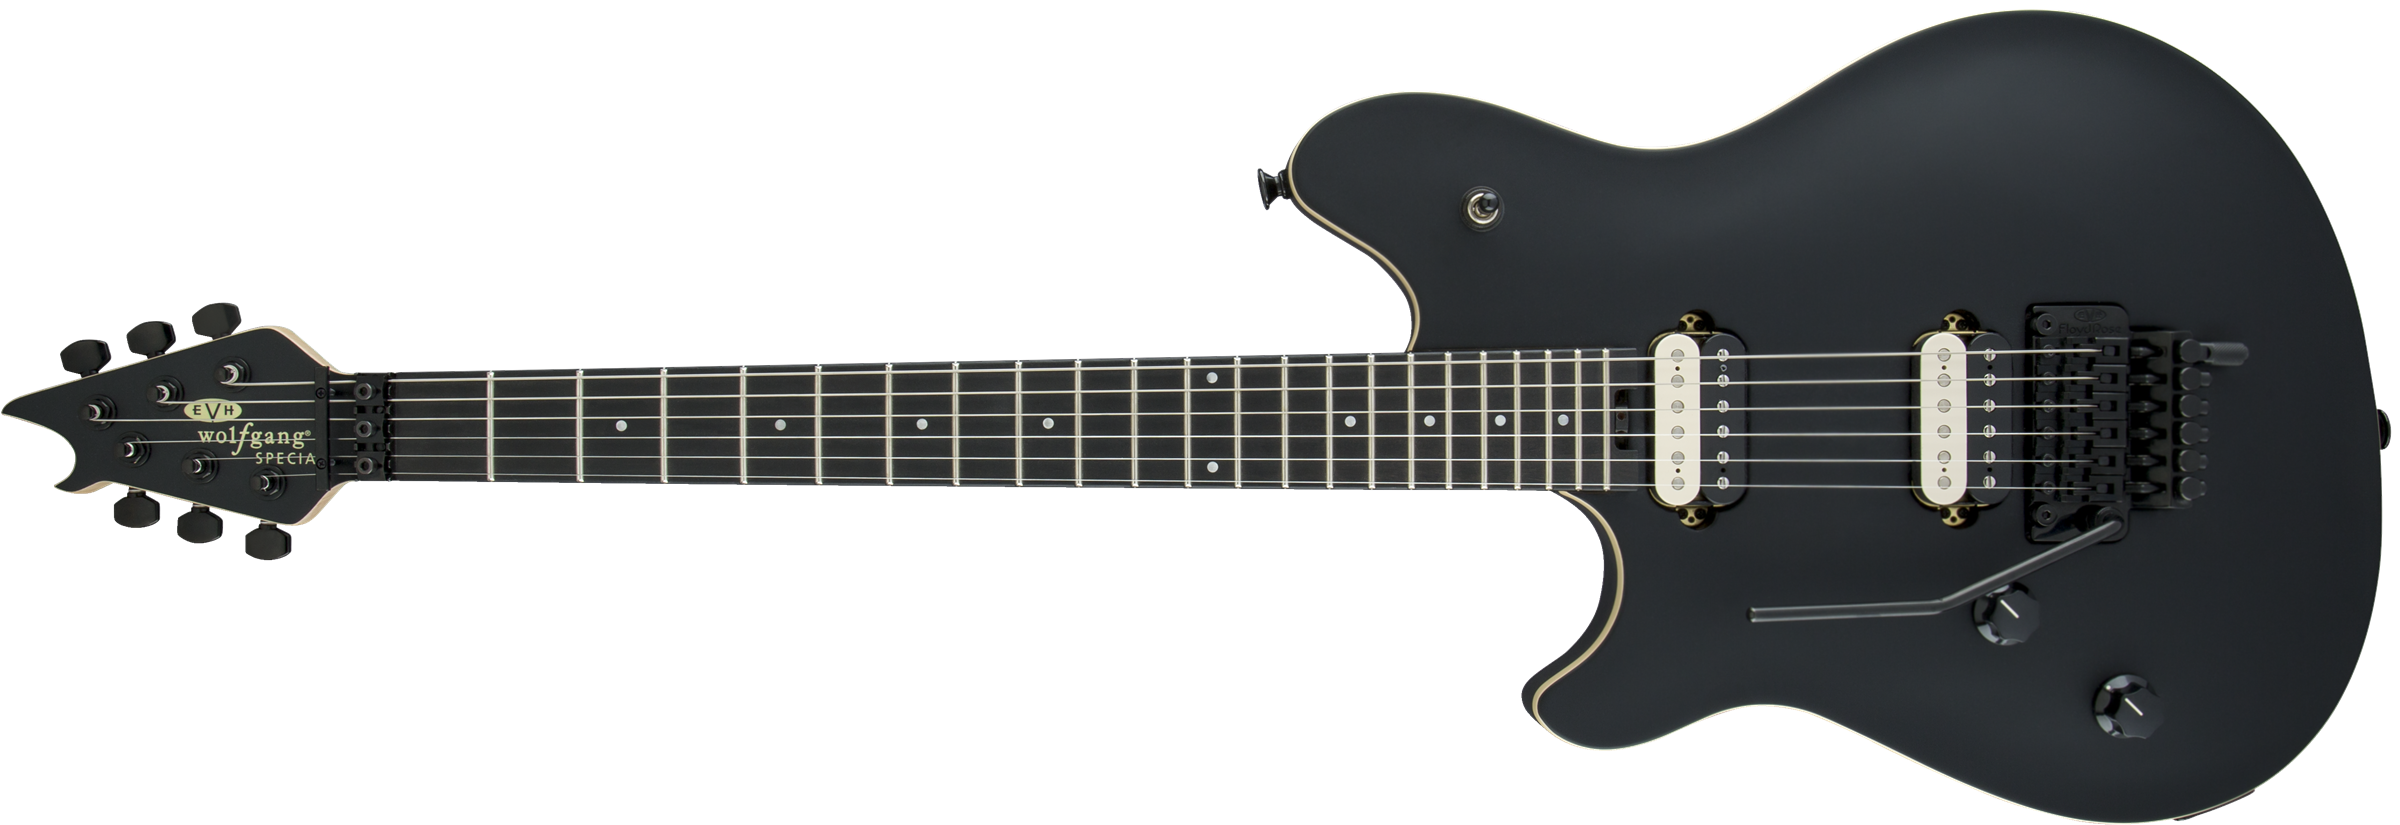 Wolfgang® Special LH, Ebony Fingerboard, Stealth